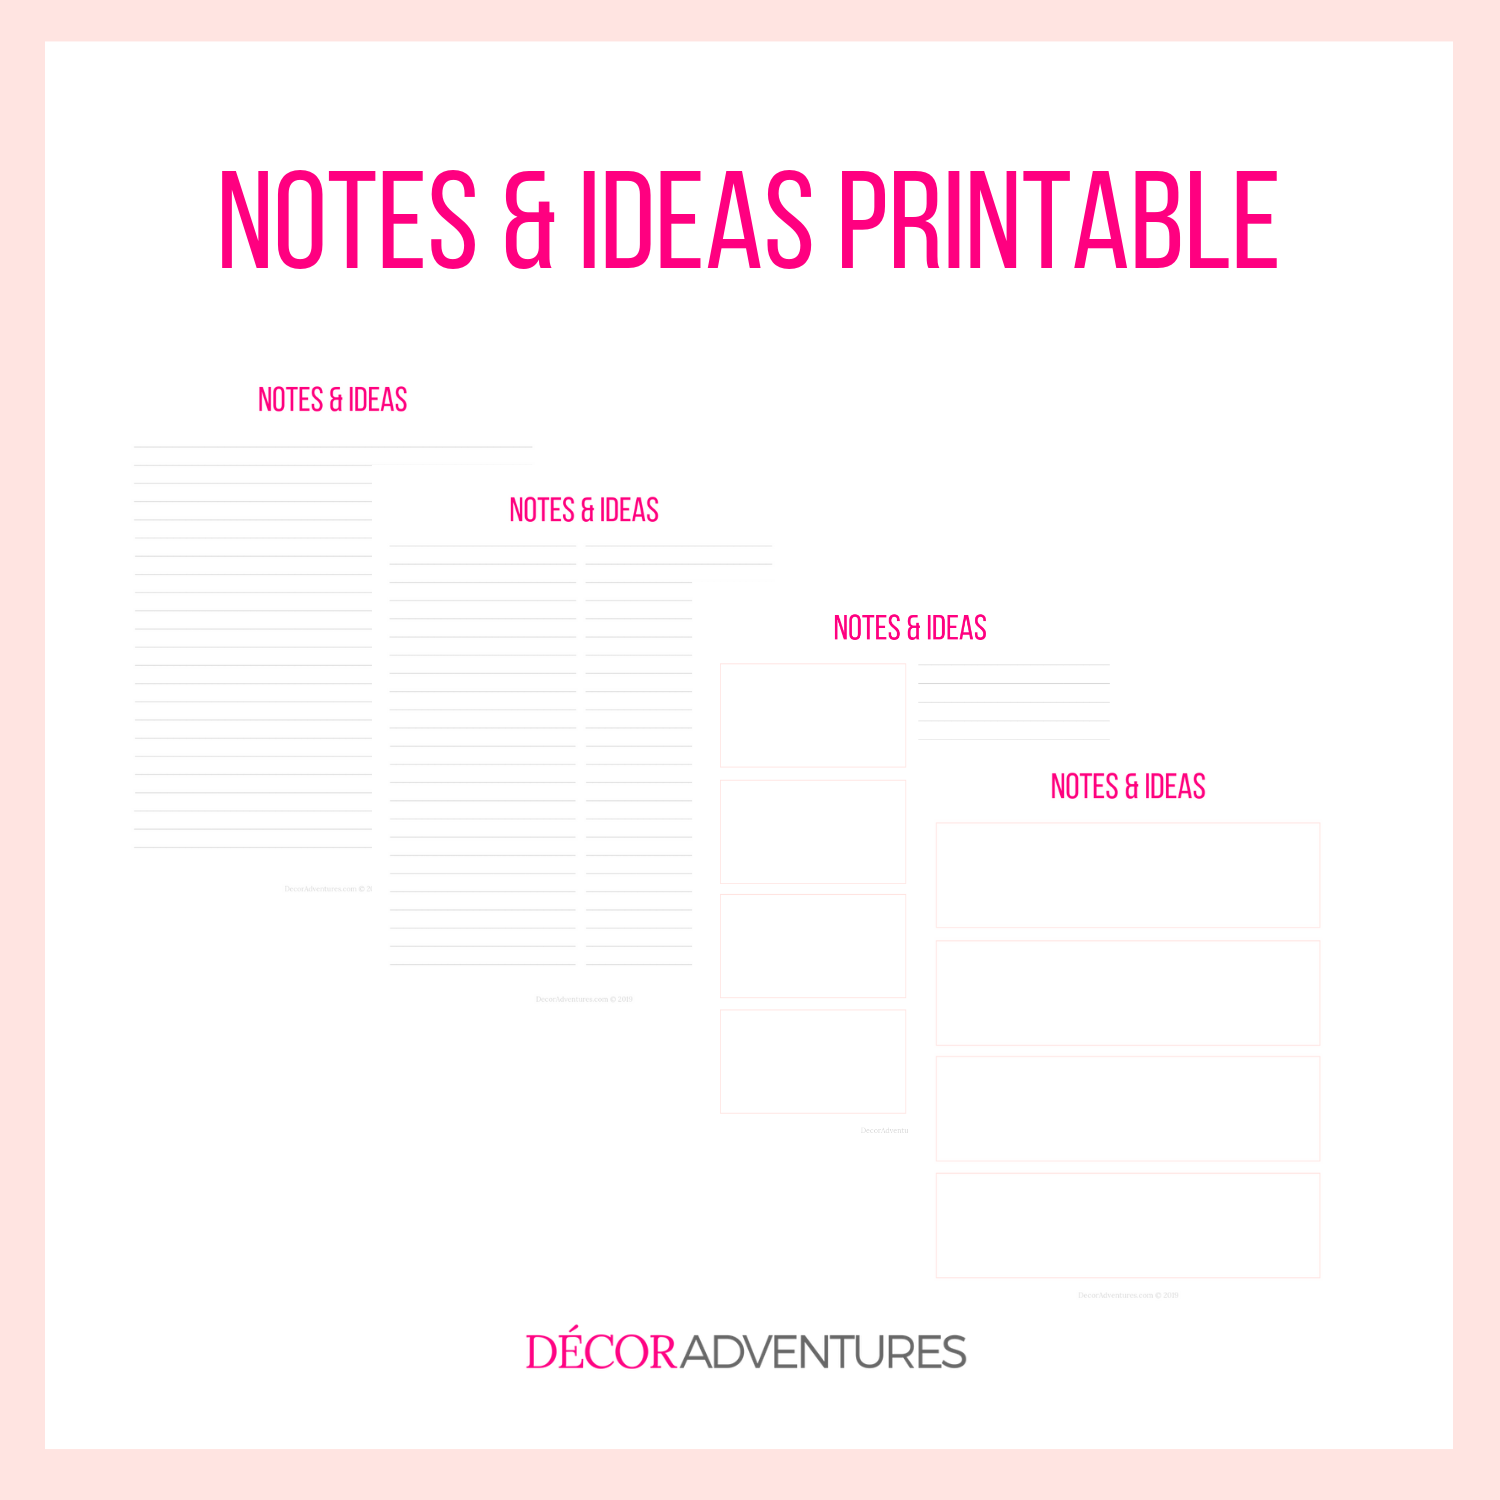 photo regarding Notes Printable titled Notes and Tips Printable PDF